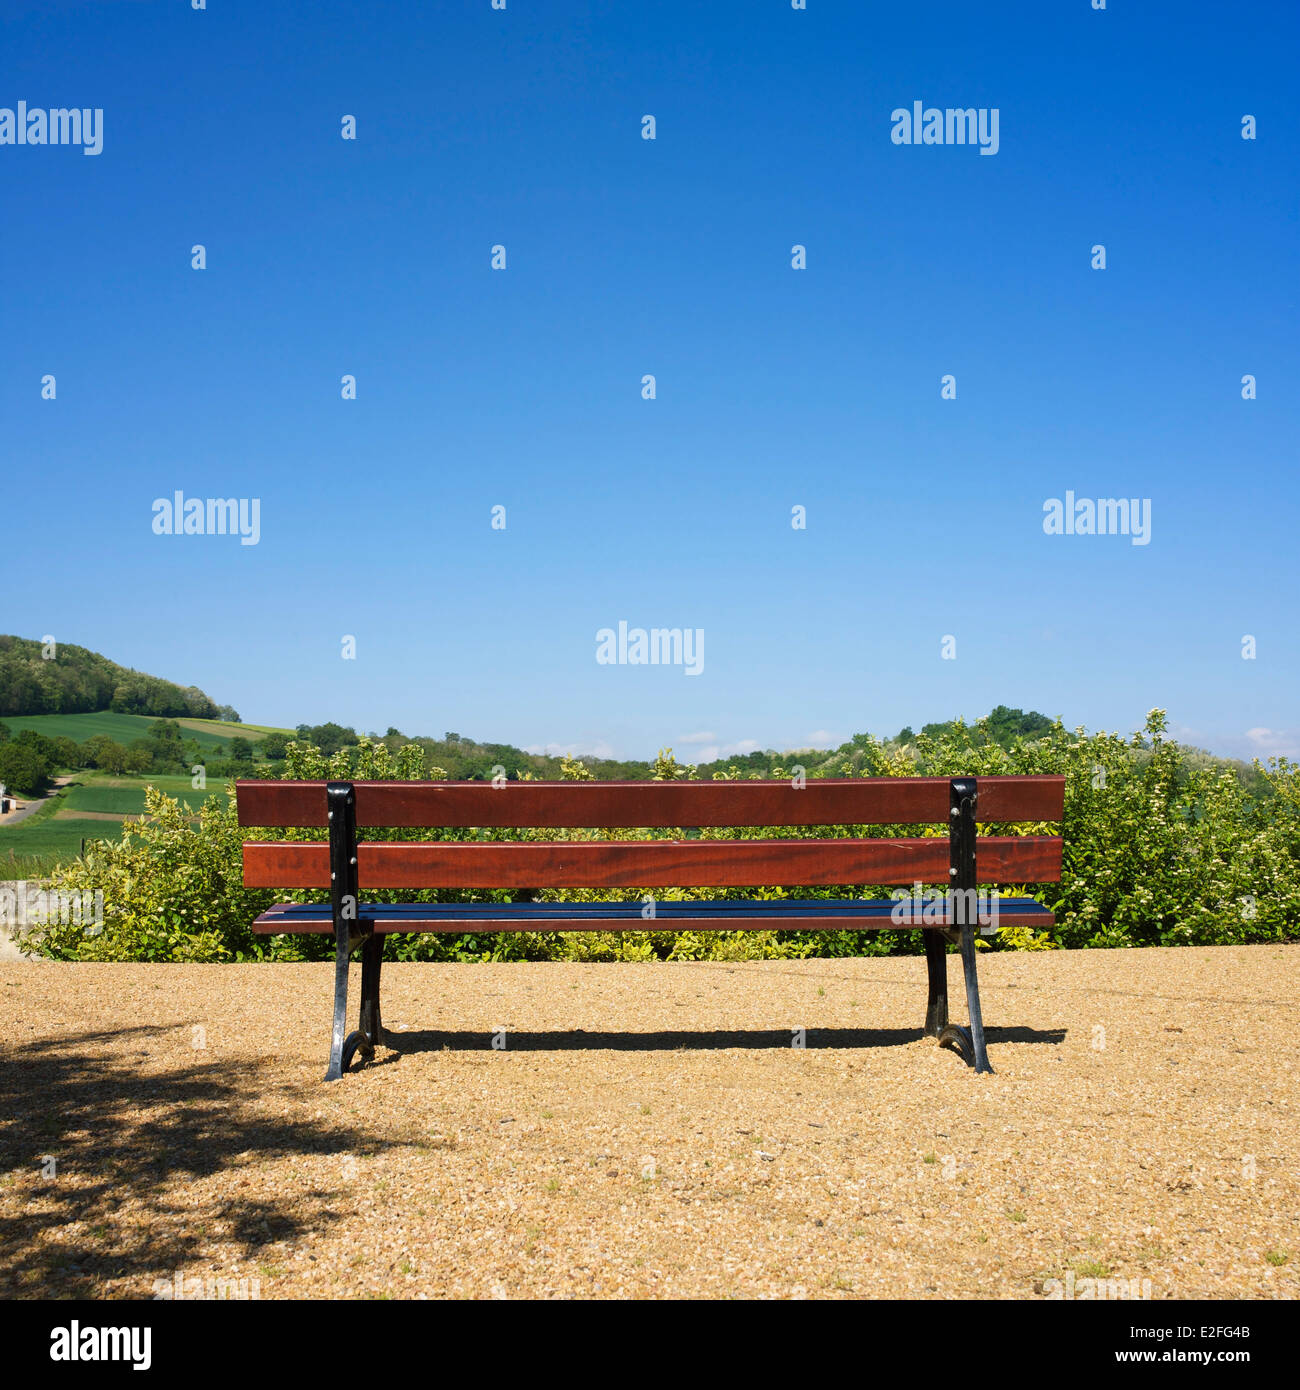 Bench overlooking the countryside - Stock Image